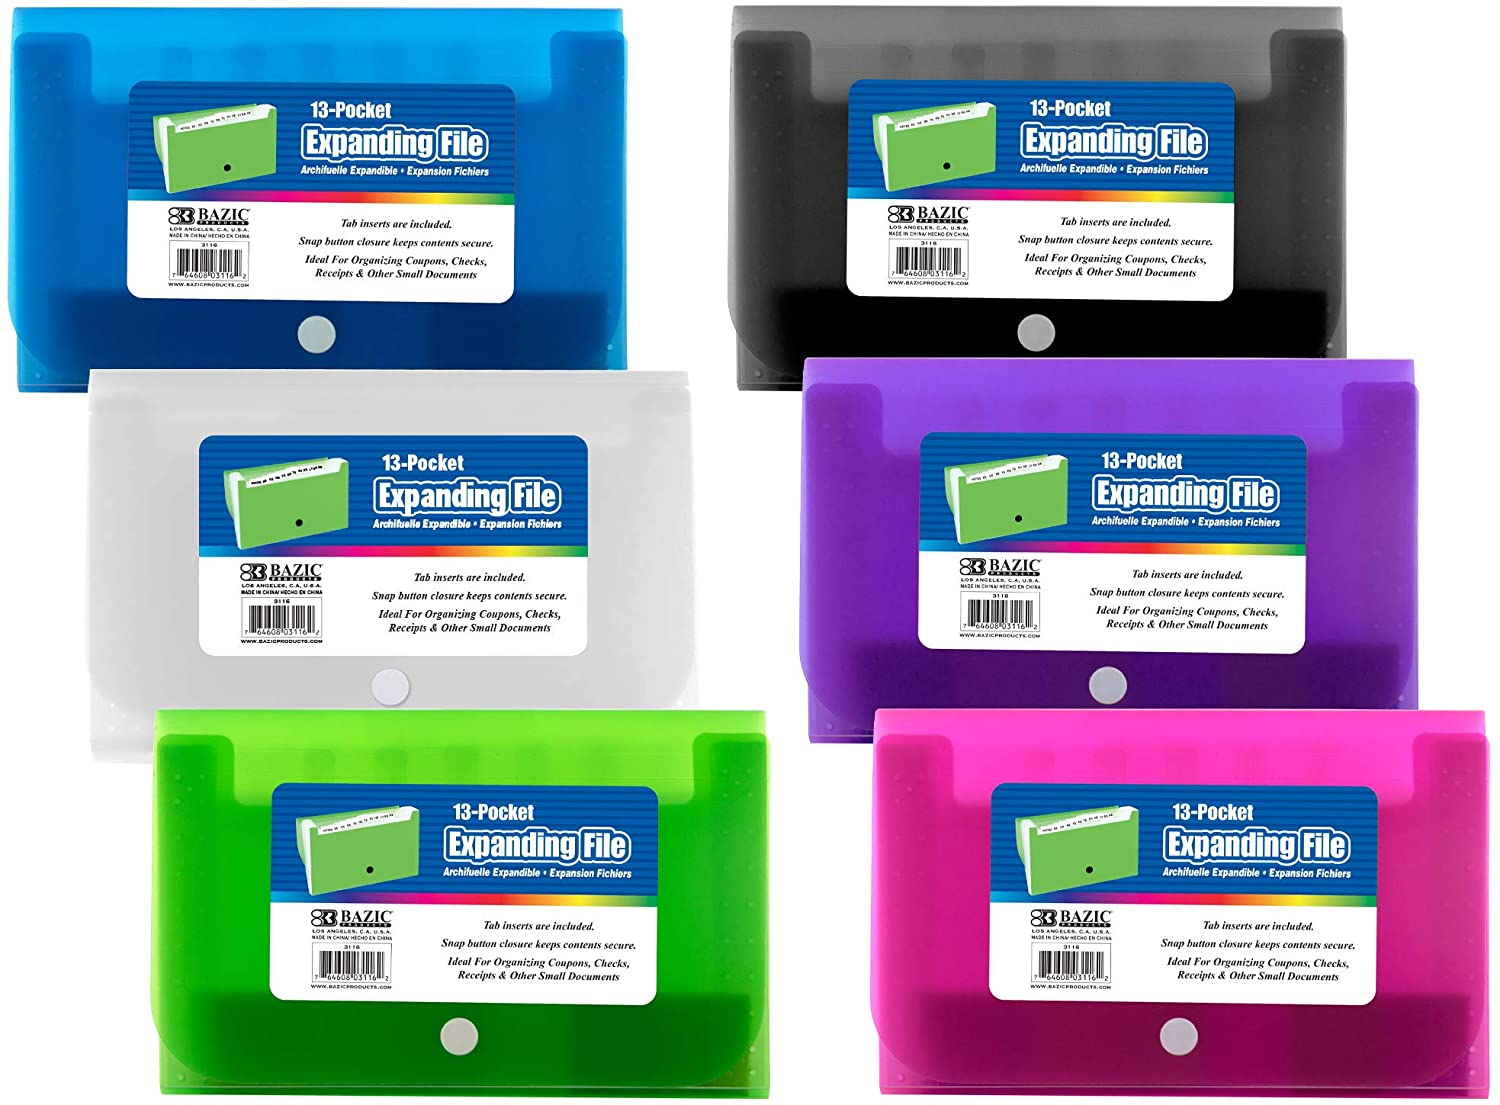 BAZIC 13-Pockets Expanding File Coupon Personal Check Size, Document Holder Files Wallet Plastic Envelope Folders, Snap Button Closure, Office Home Organize - Assorted Color, 6-Pack